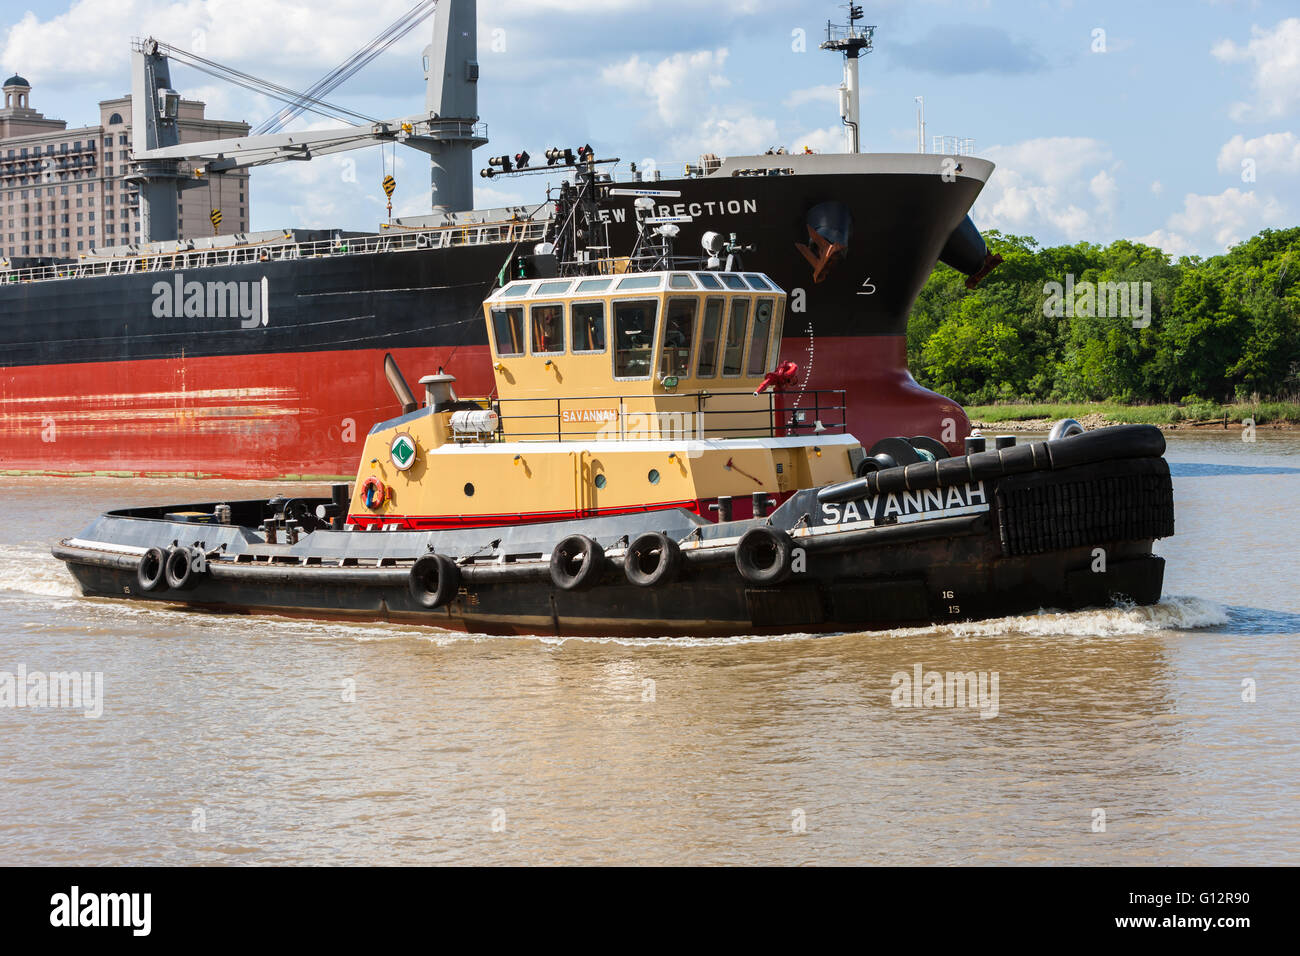 Tugboat 'Savannah' leads bulk carrier ship 'New Direction' along the Savannah River in Savannah, - Stock Image